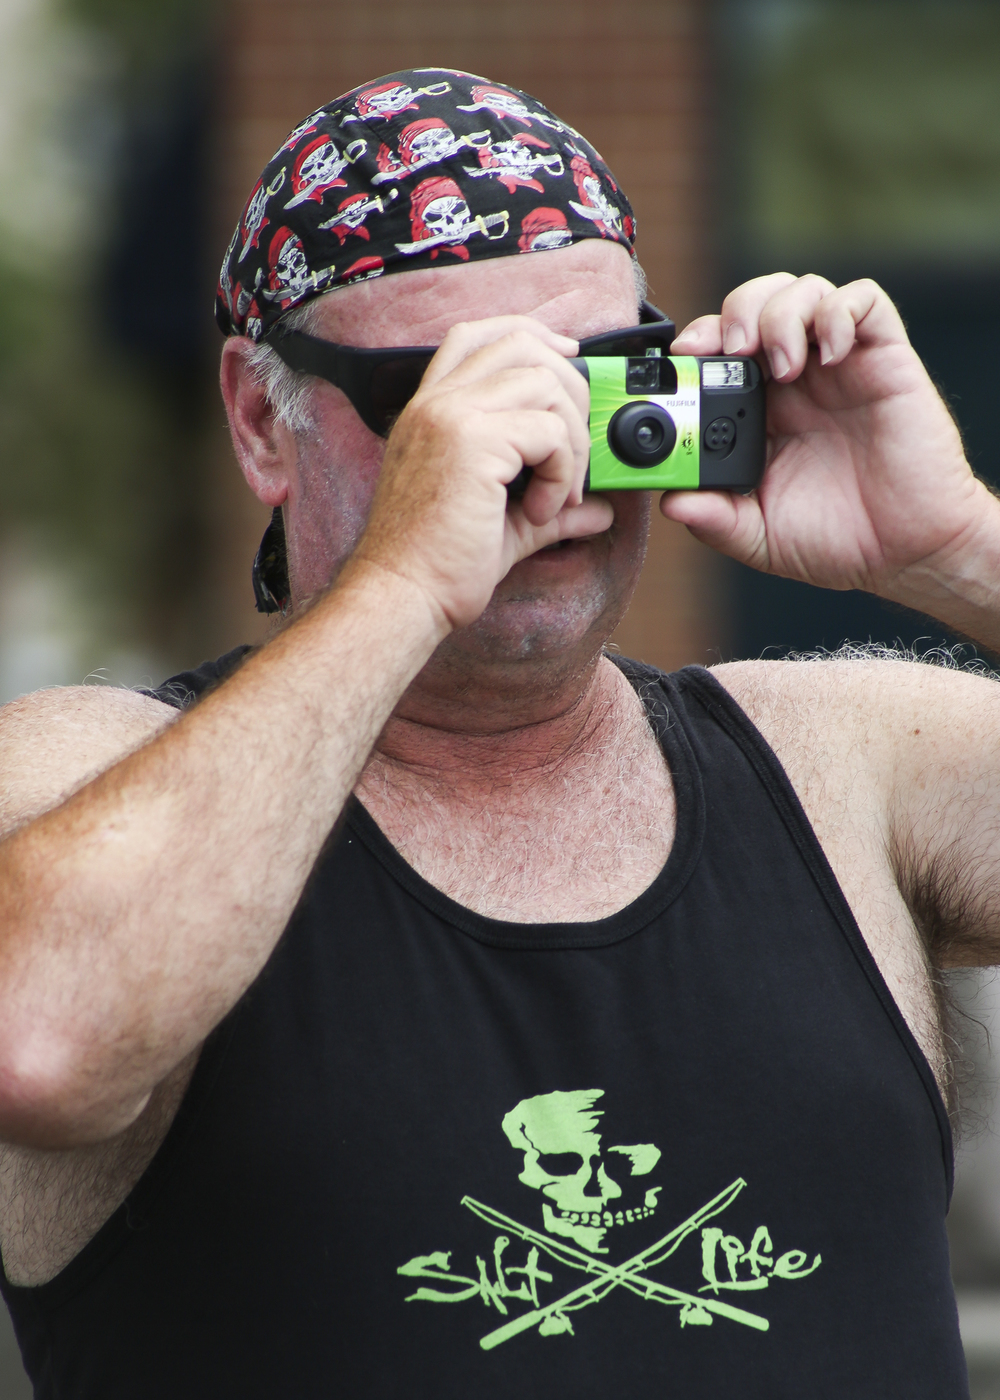 Lenny Temple of Moyock, North Carolina takes a picture with his disposable camera during the Blackbeard Pirate Festival, Hampton, Saturday, June 4, 2016. (Sonya Paclob / Special to the Daily Press)